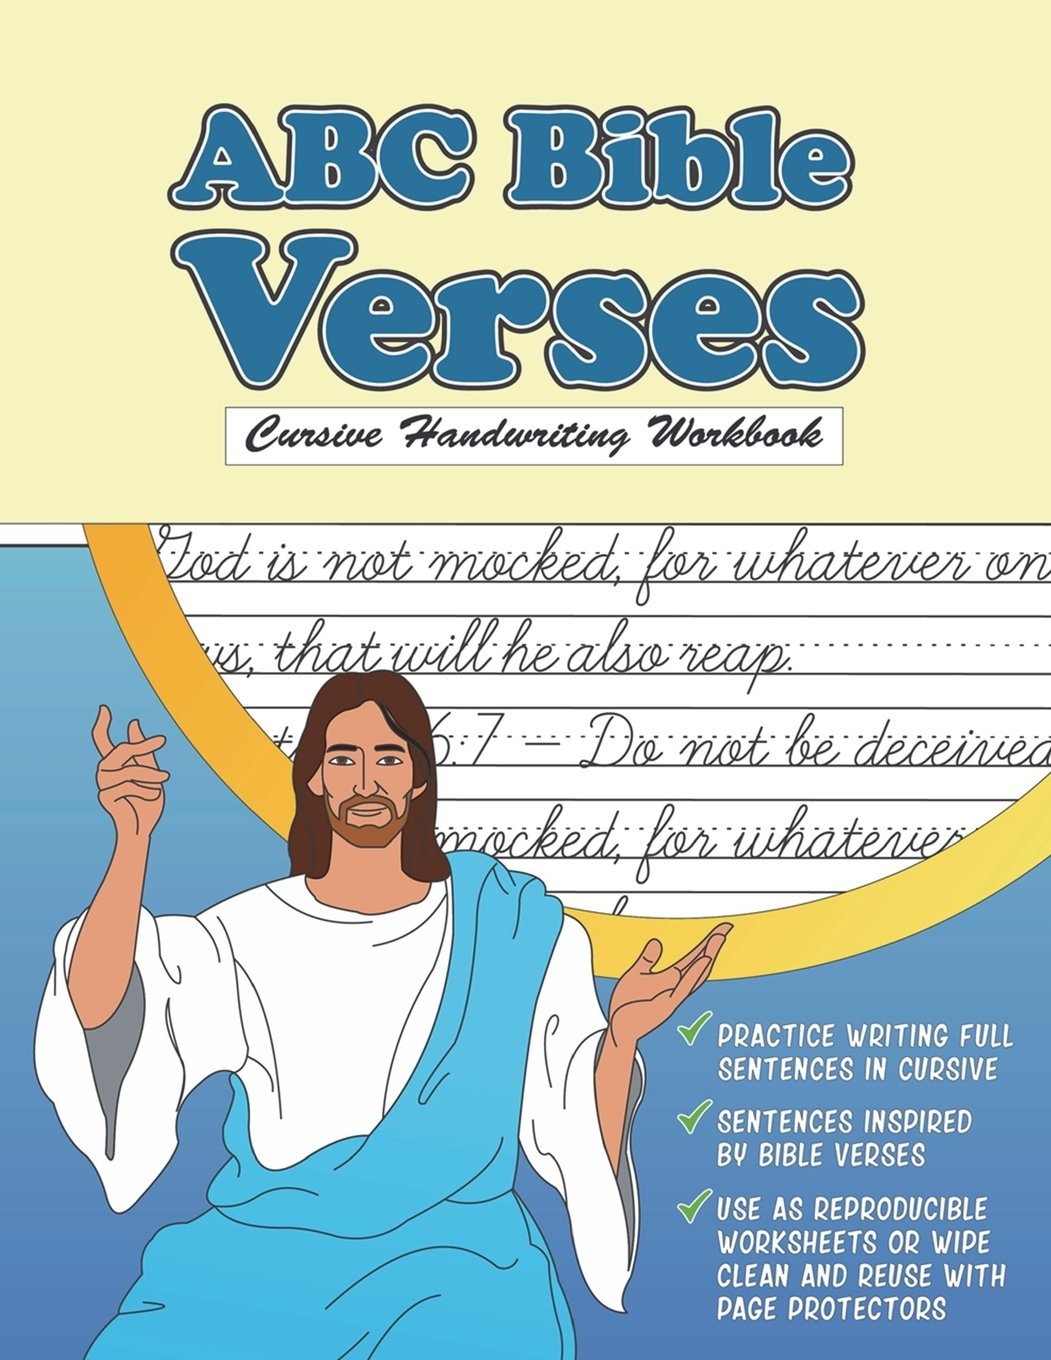 Download Cursive Handwriting Workbook: ABC Bible Verses: Christian Cursive Tracing Book with Reproducible Worksheets (Cursive Writing Practice Books for Kids) (Volume 3) PDF